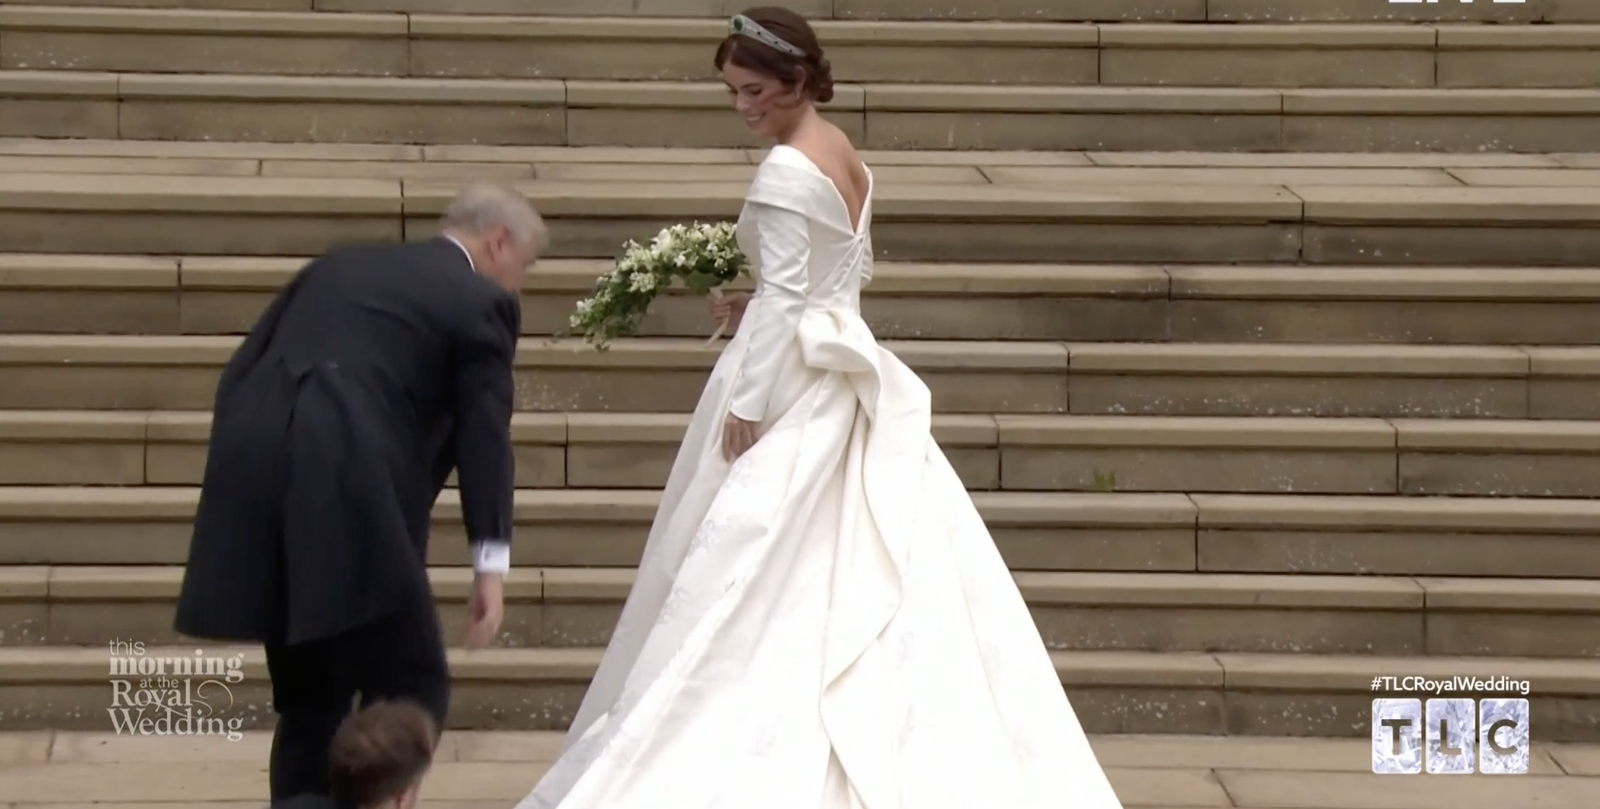 The First Full Look Of Princess Eugenie S Peter Pilotto Royal Wedding Dress Is Here Wedding Dresses Royal Wedding Dress Eugenie Wedding [ 809 x 1600 Pixel ]